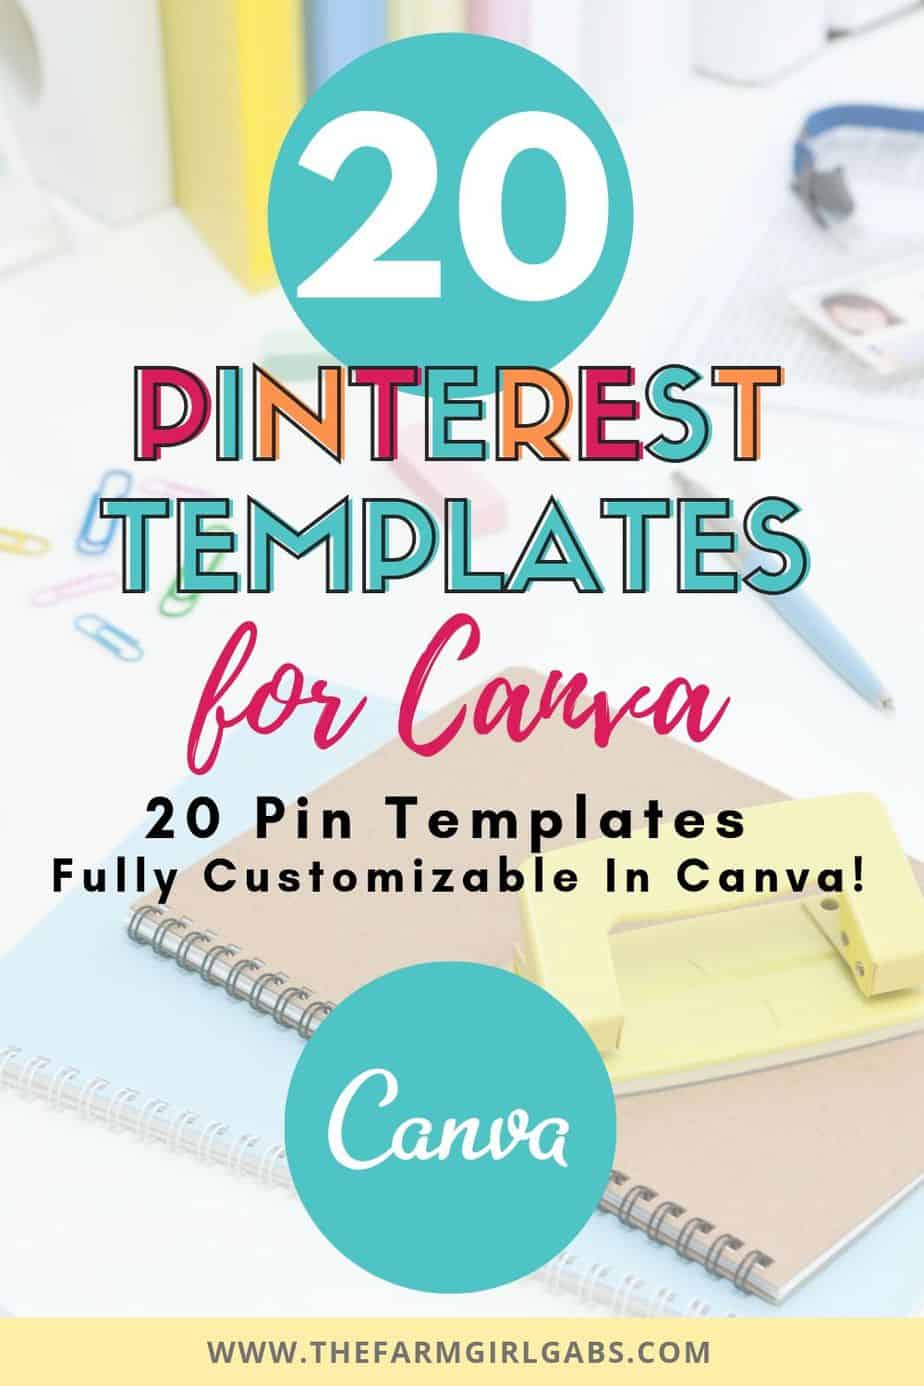 Want to conquer the creative Pin game but don't have the time? These 14 Canva Templates for Pinterest are fully editable in Canva and can be customized to fit your business or blog.